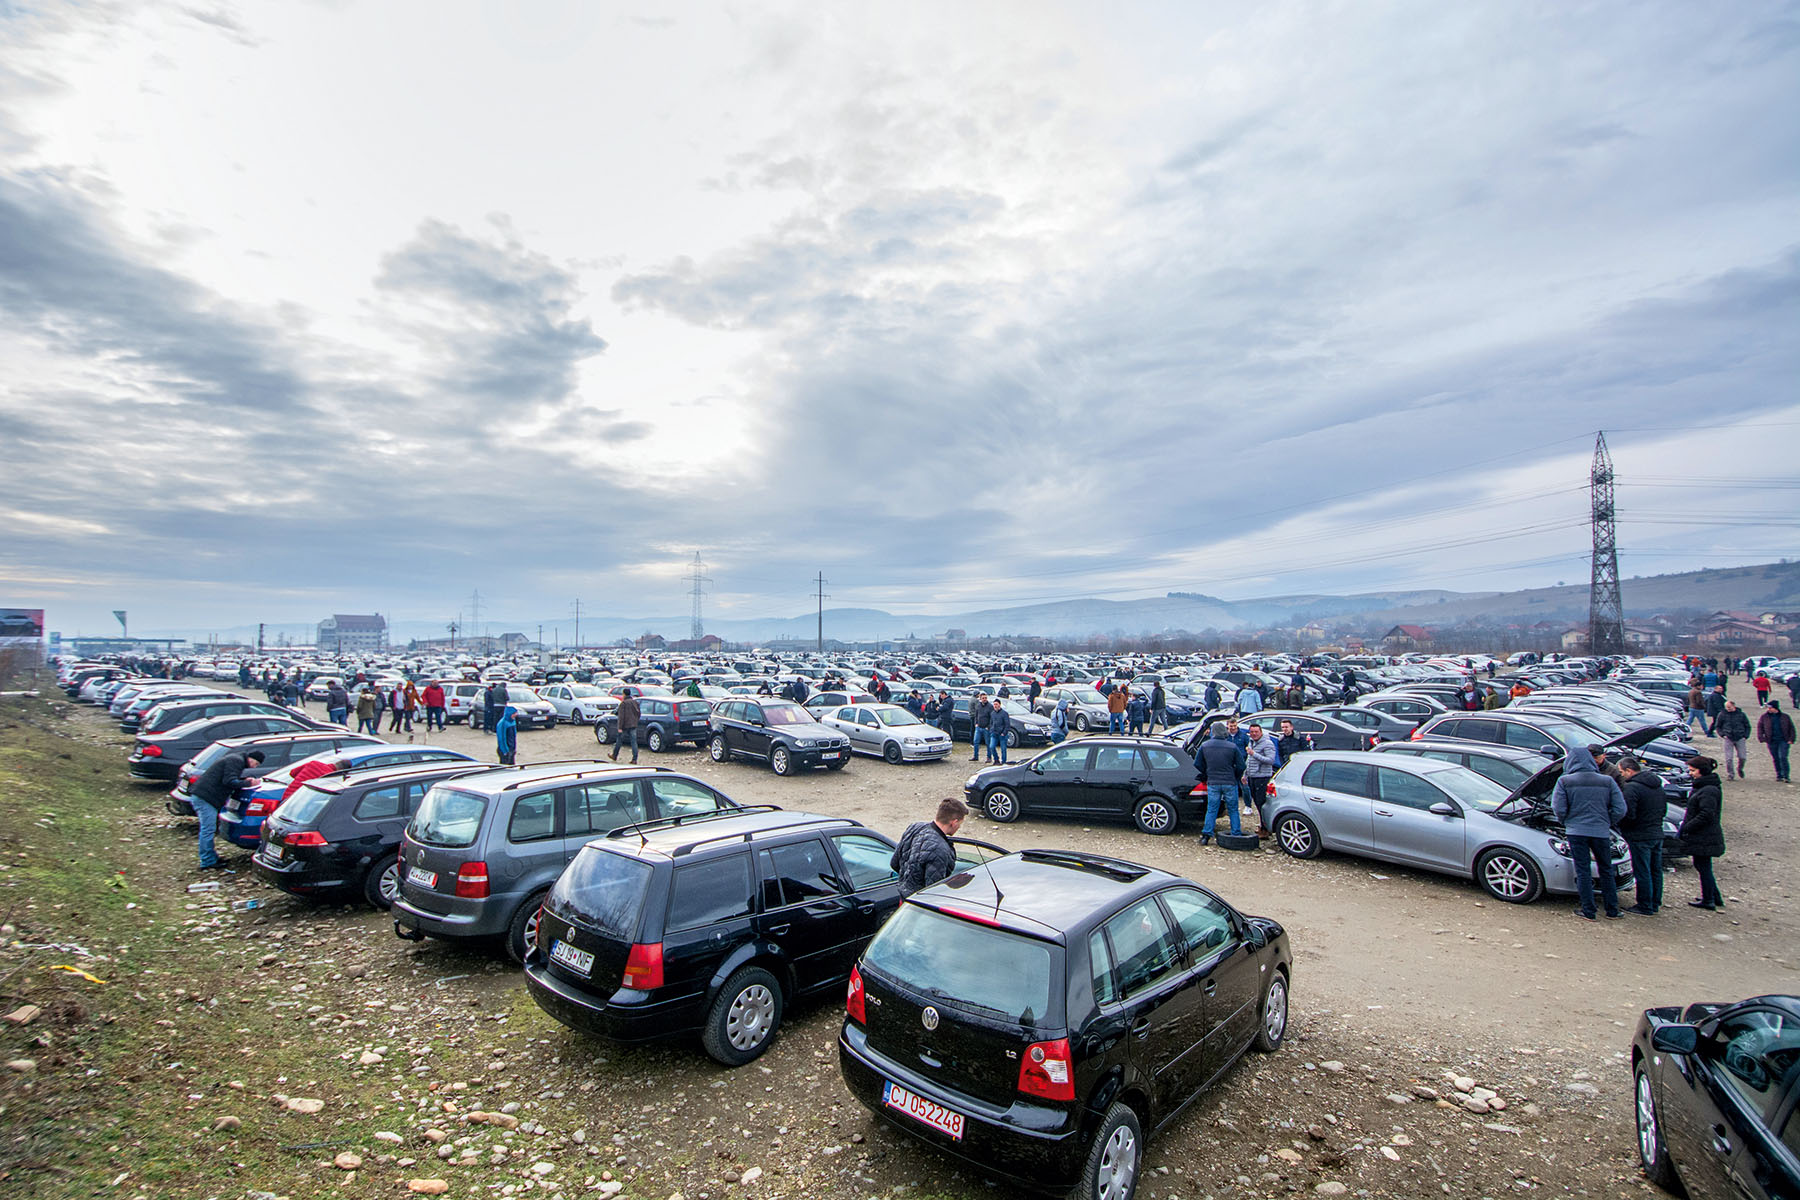 Cars Sale Europe Unique Eastern Europe S Appetite for Dirty Old Sels